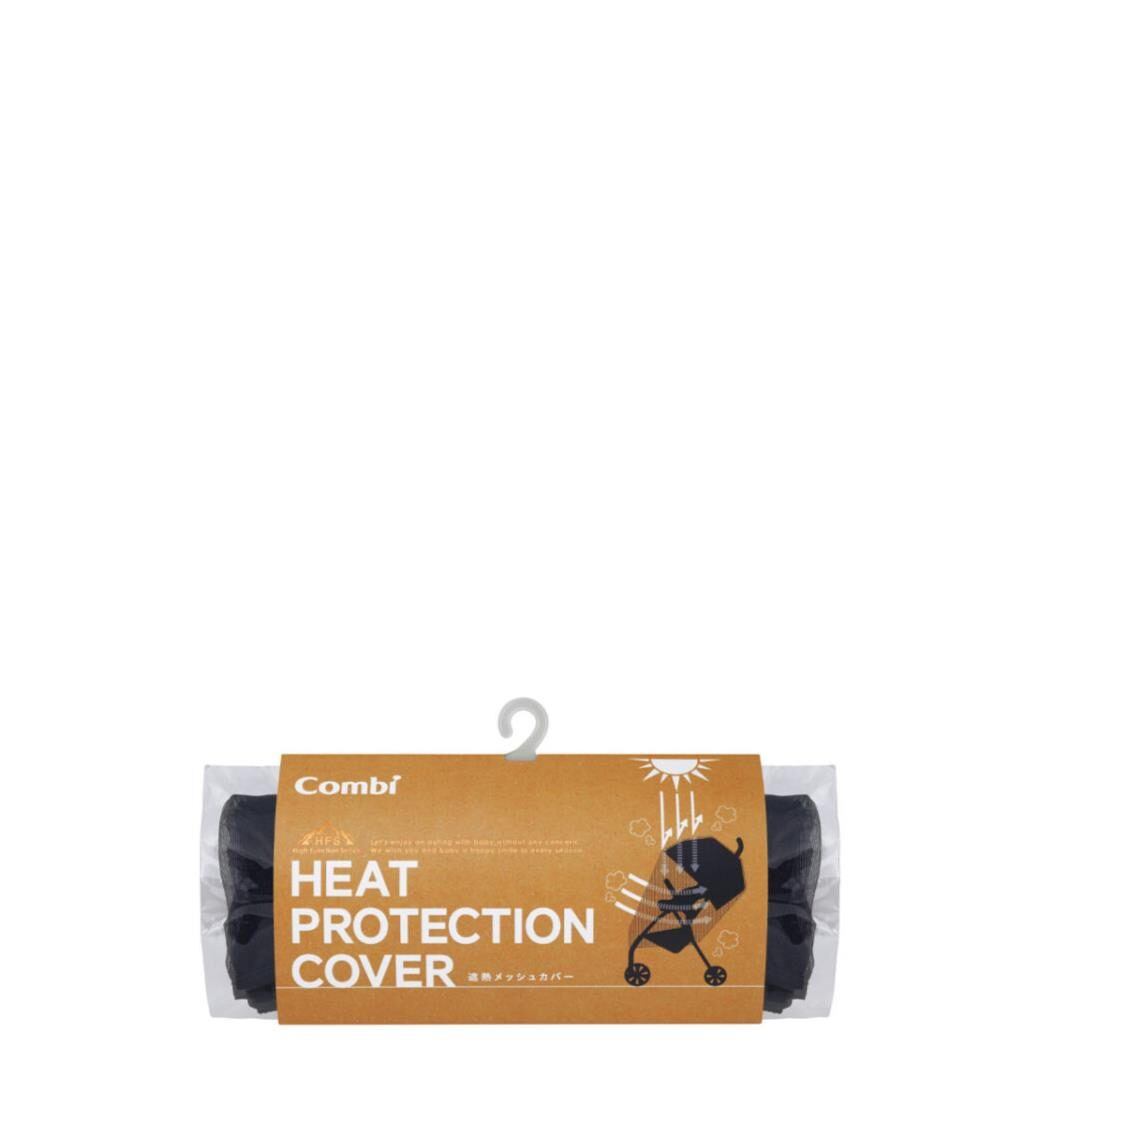 Combi Heat Protection Cover